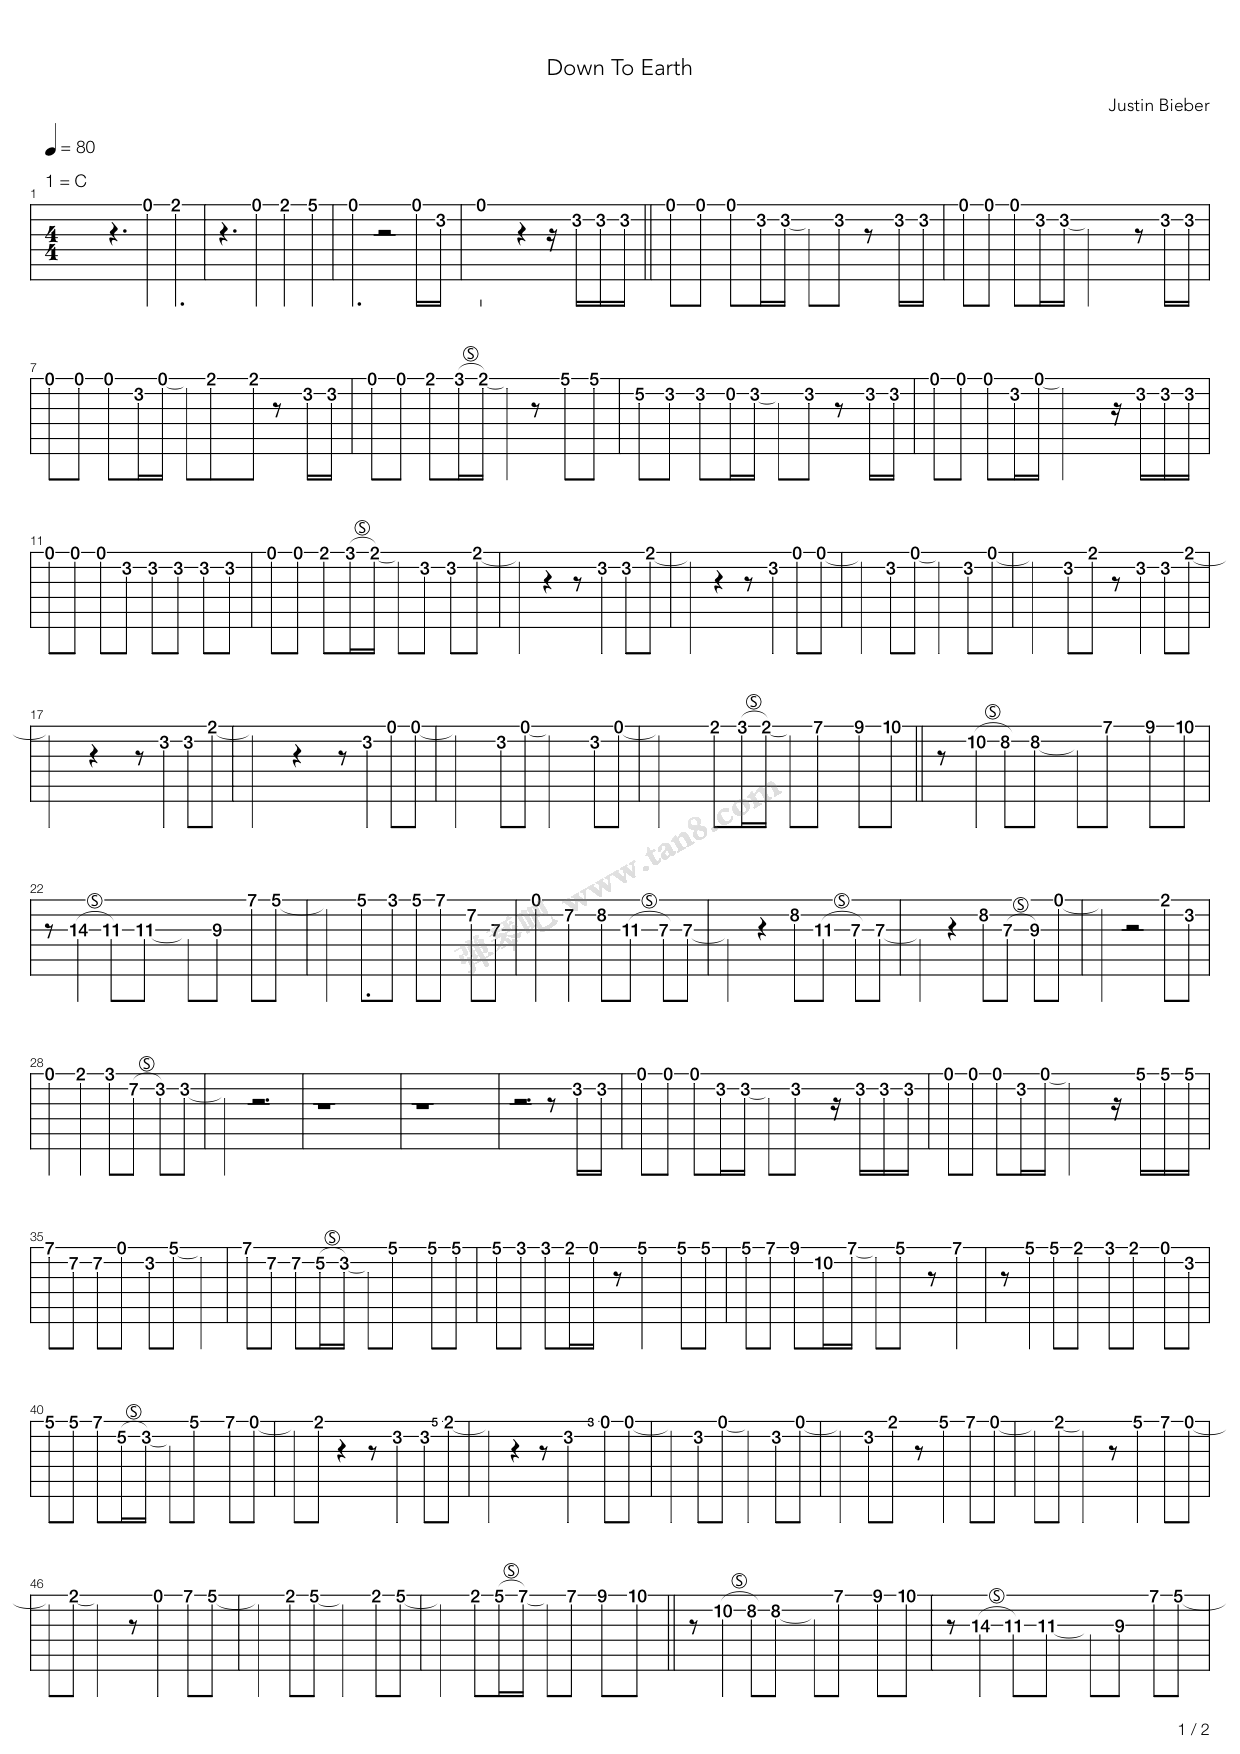 Down To Earth By Justin Bieber Guitar Tabs Chords Sheet Music Free